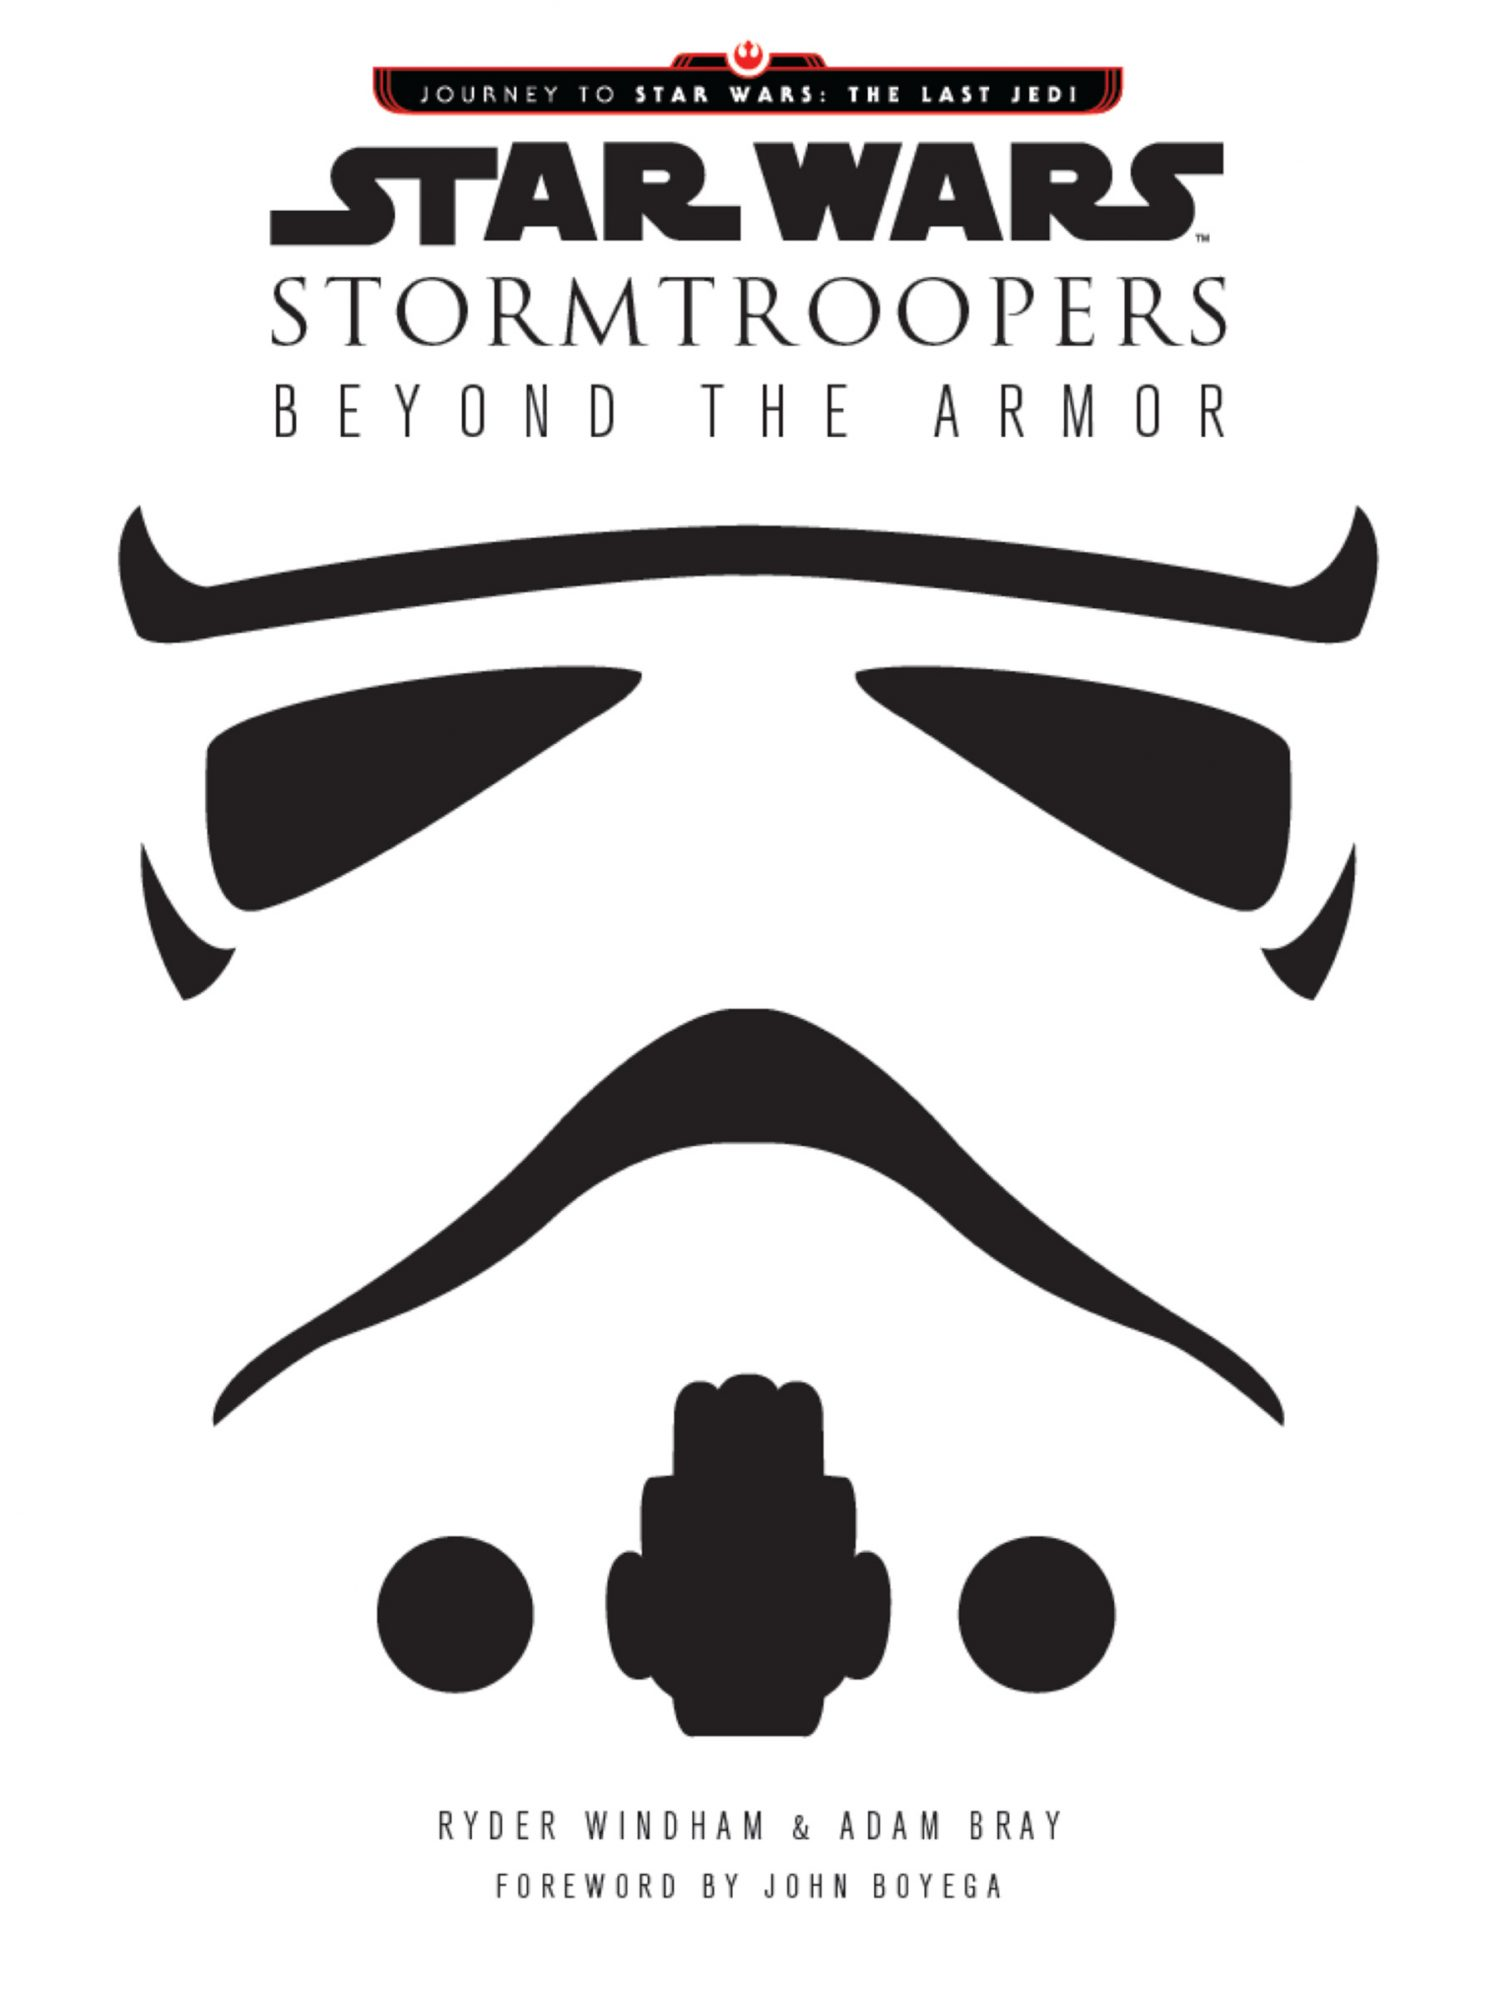 Stormtroopers: Beyond the Armor, by Ryder Windham and Adam Bray